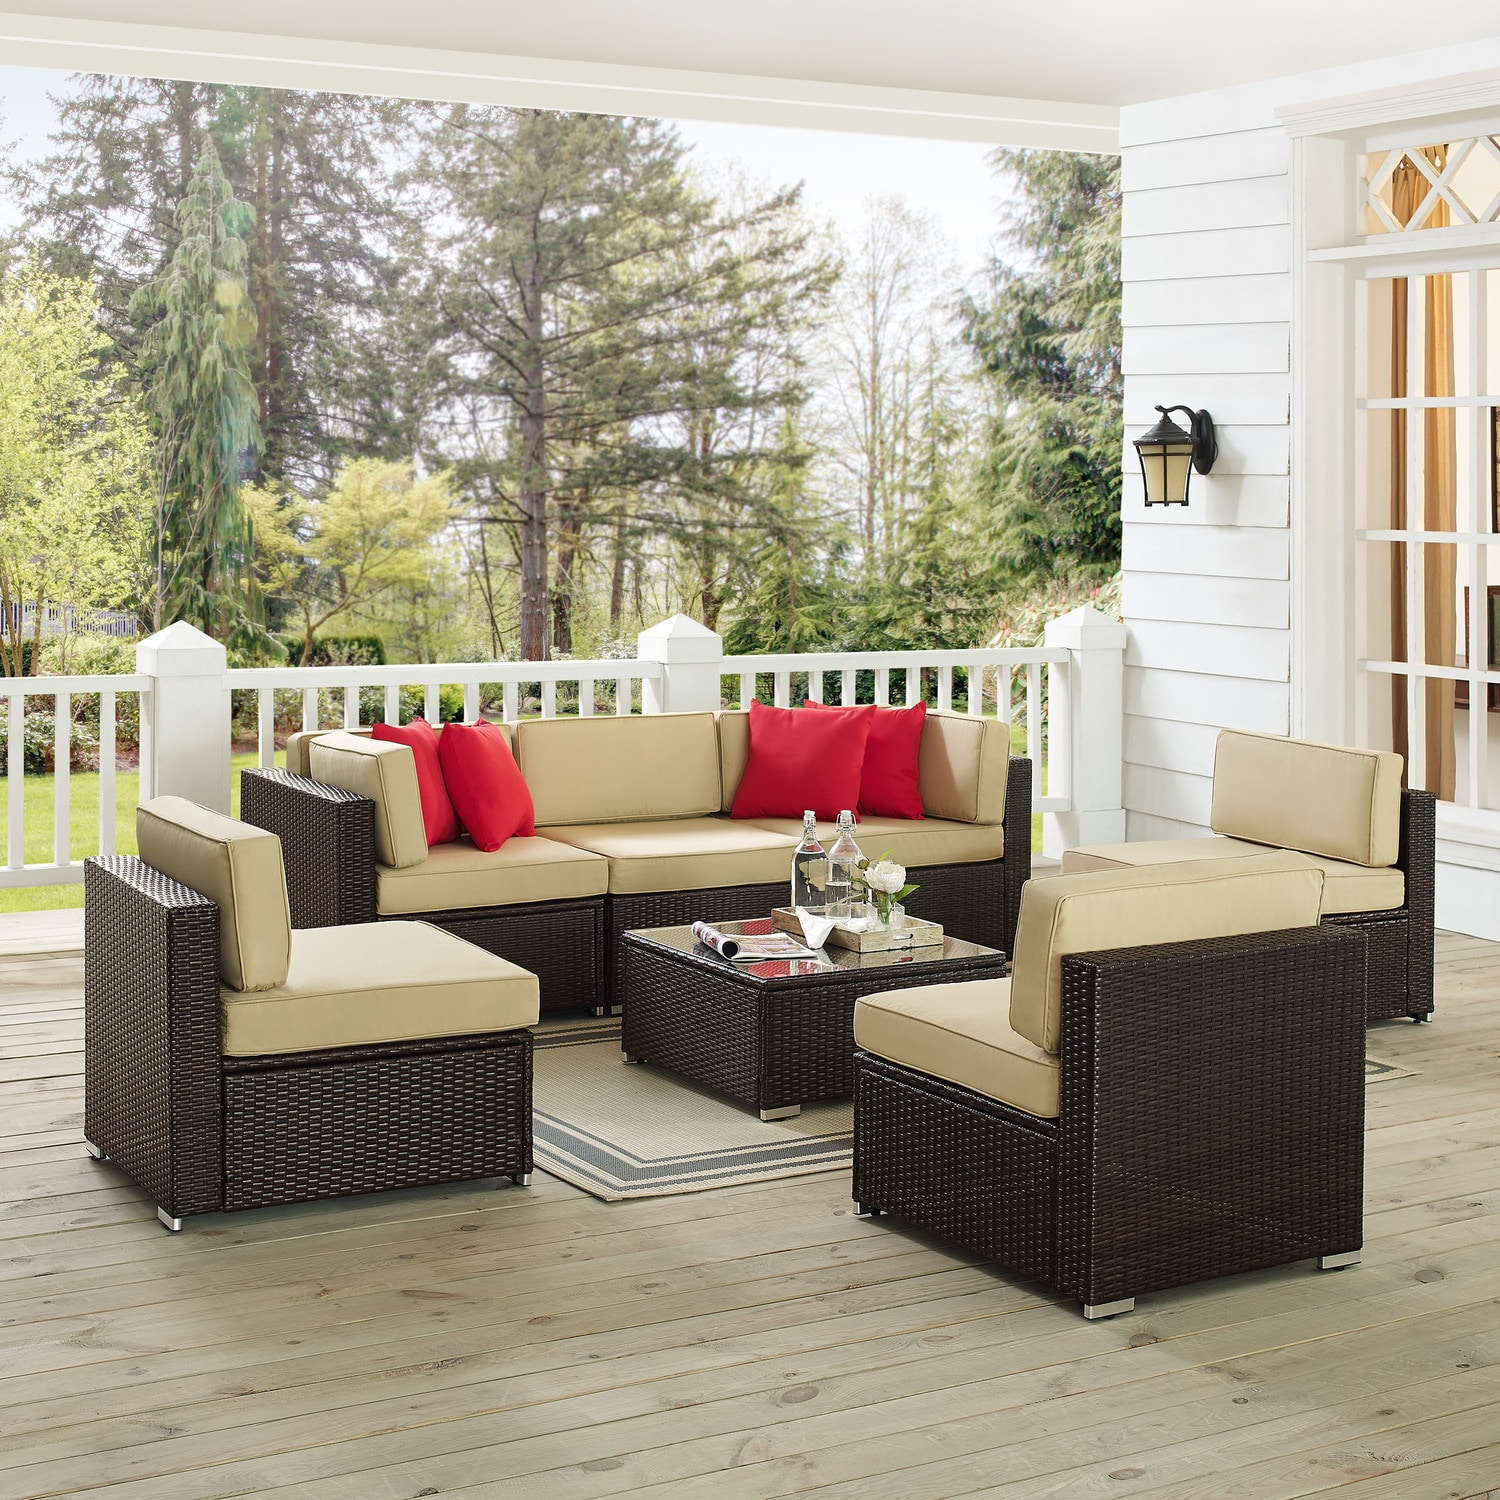 Outdoor Furniture - Jacques 3-Piece Outdoor Sofa, 3 Armless Chairs, and Coffee Table Set - Brown